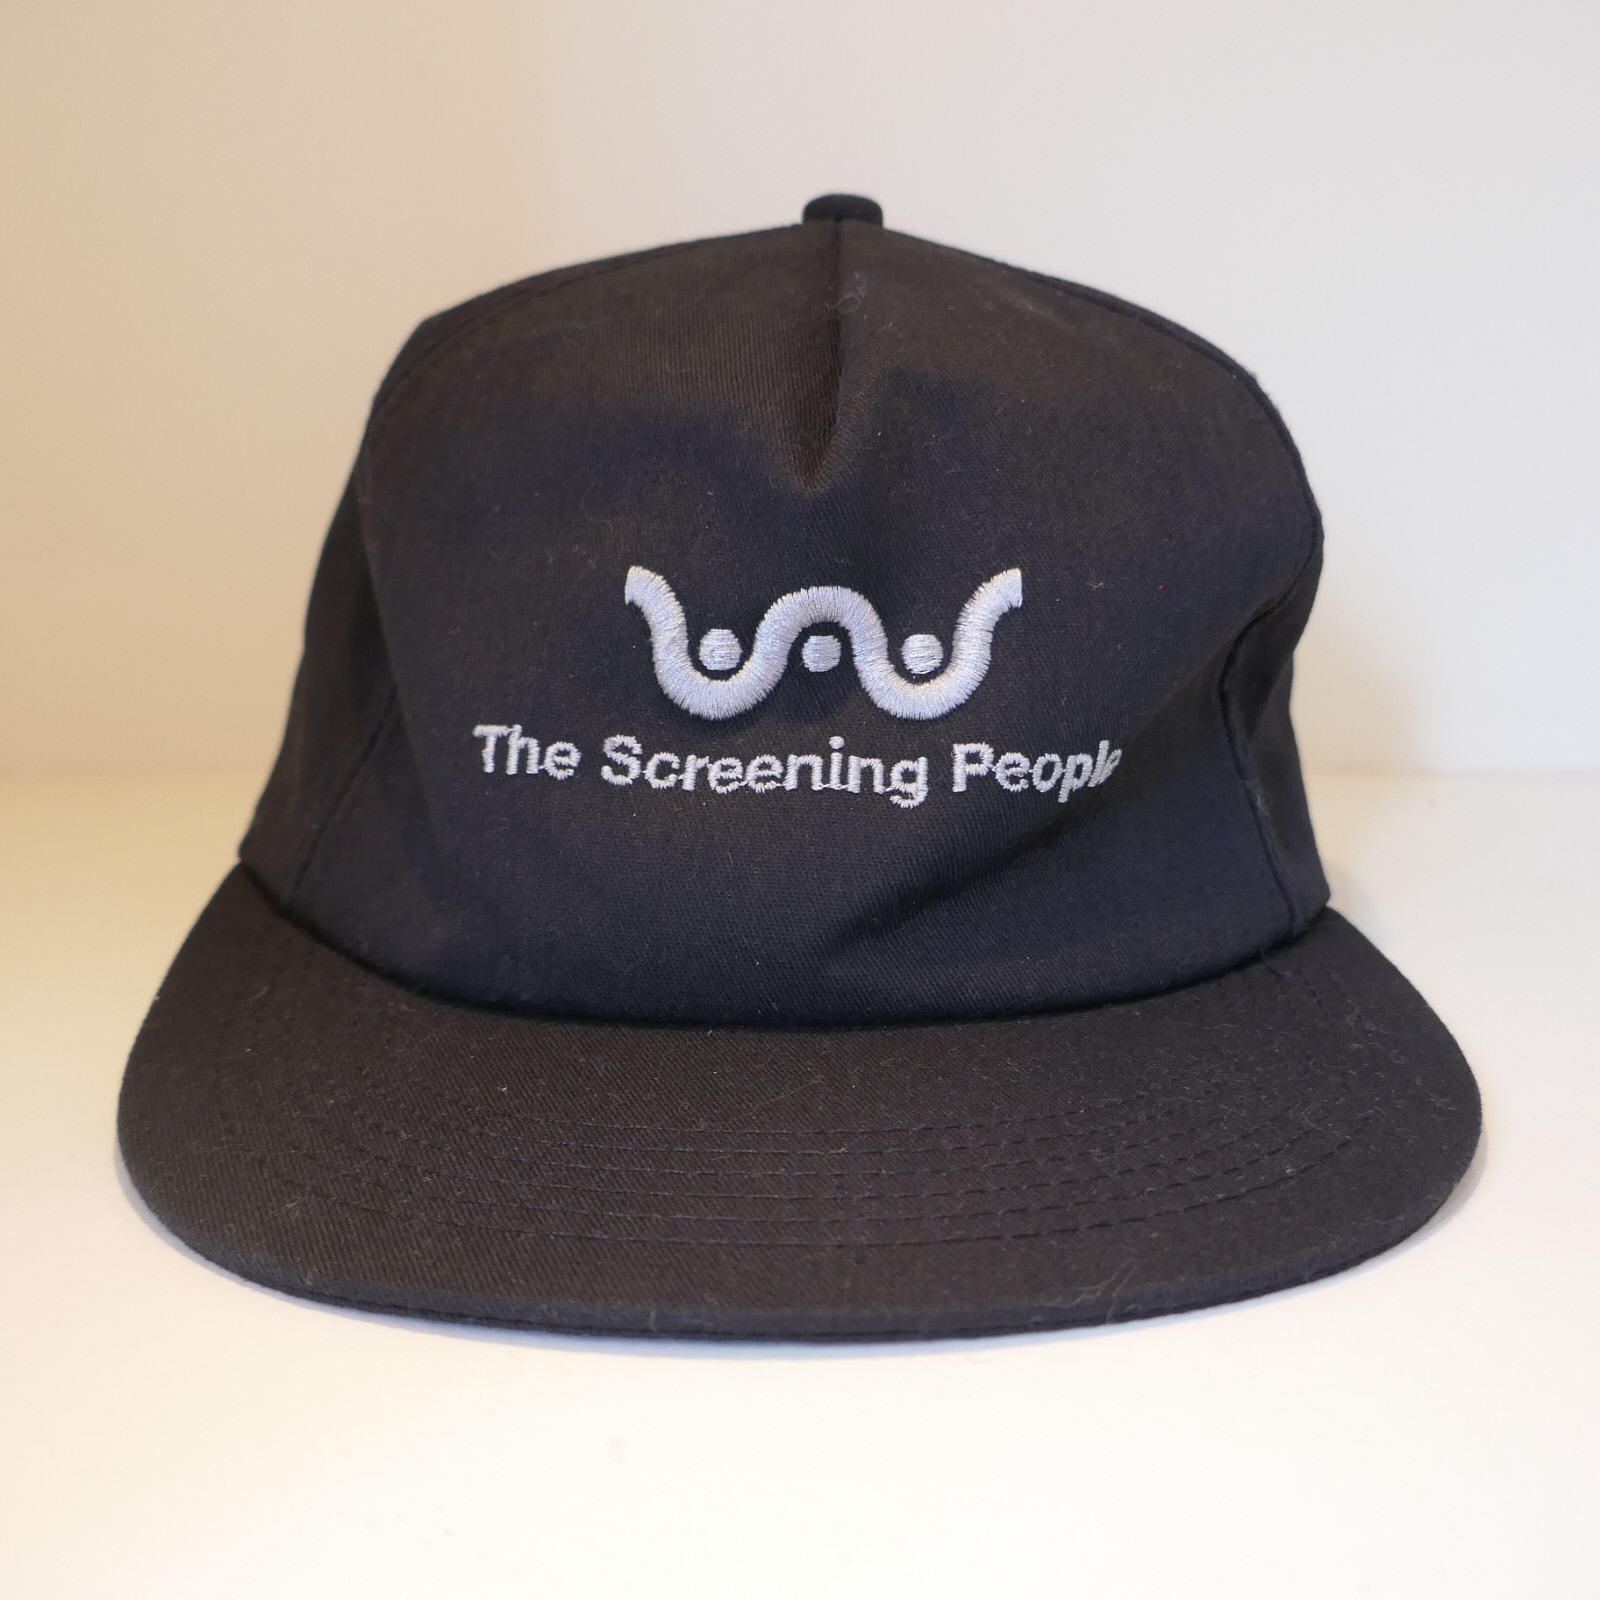 USED SCREENING PEOPLE CAP BLACK